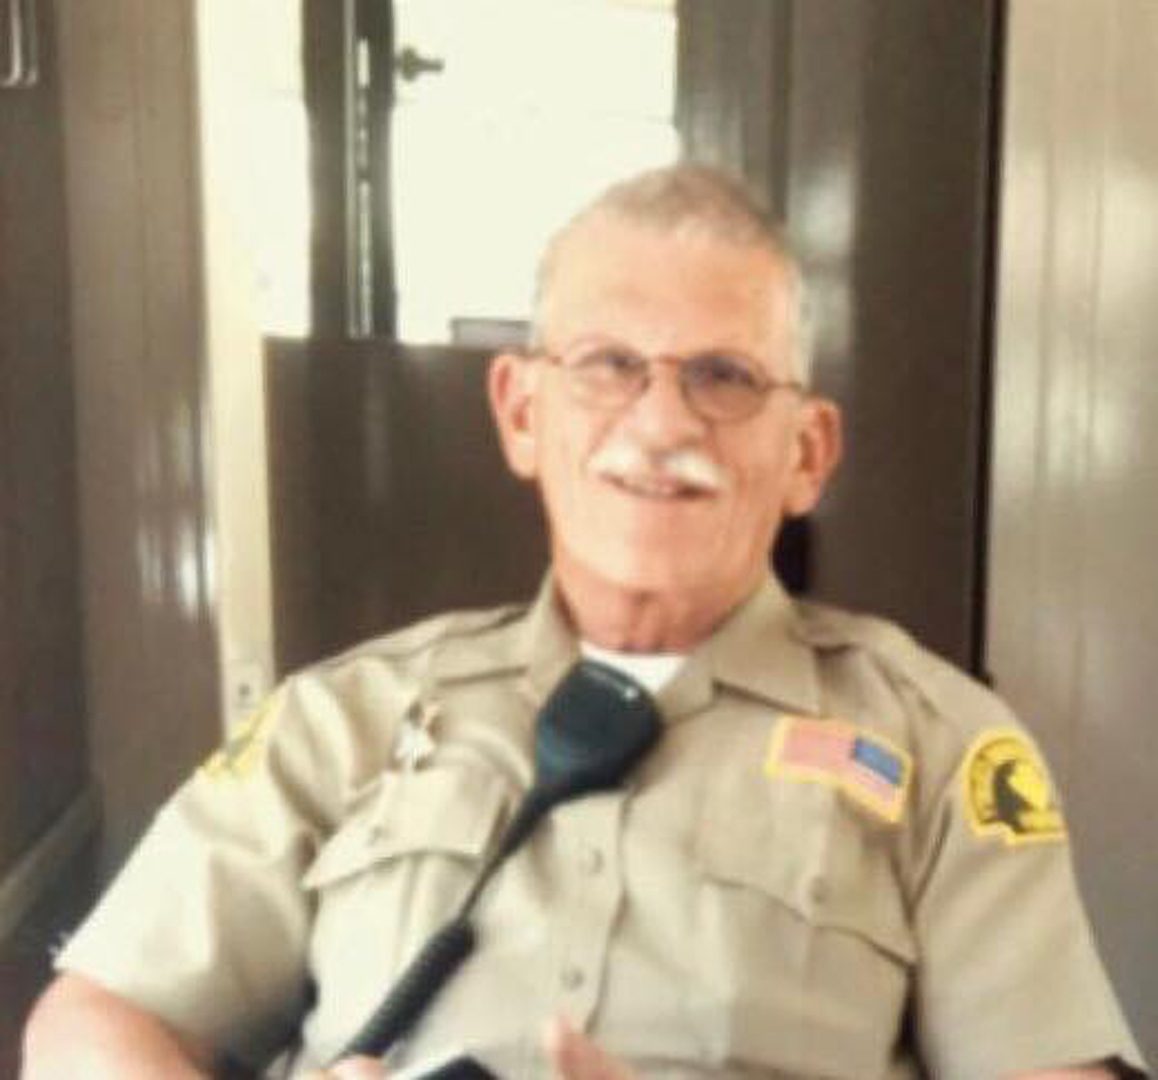 Deputy Larry Falce is seen in this photo released by the Sheriff's Employees' Benefit Association.